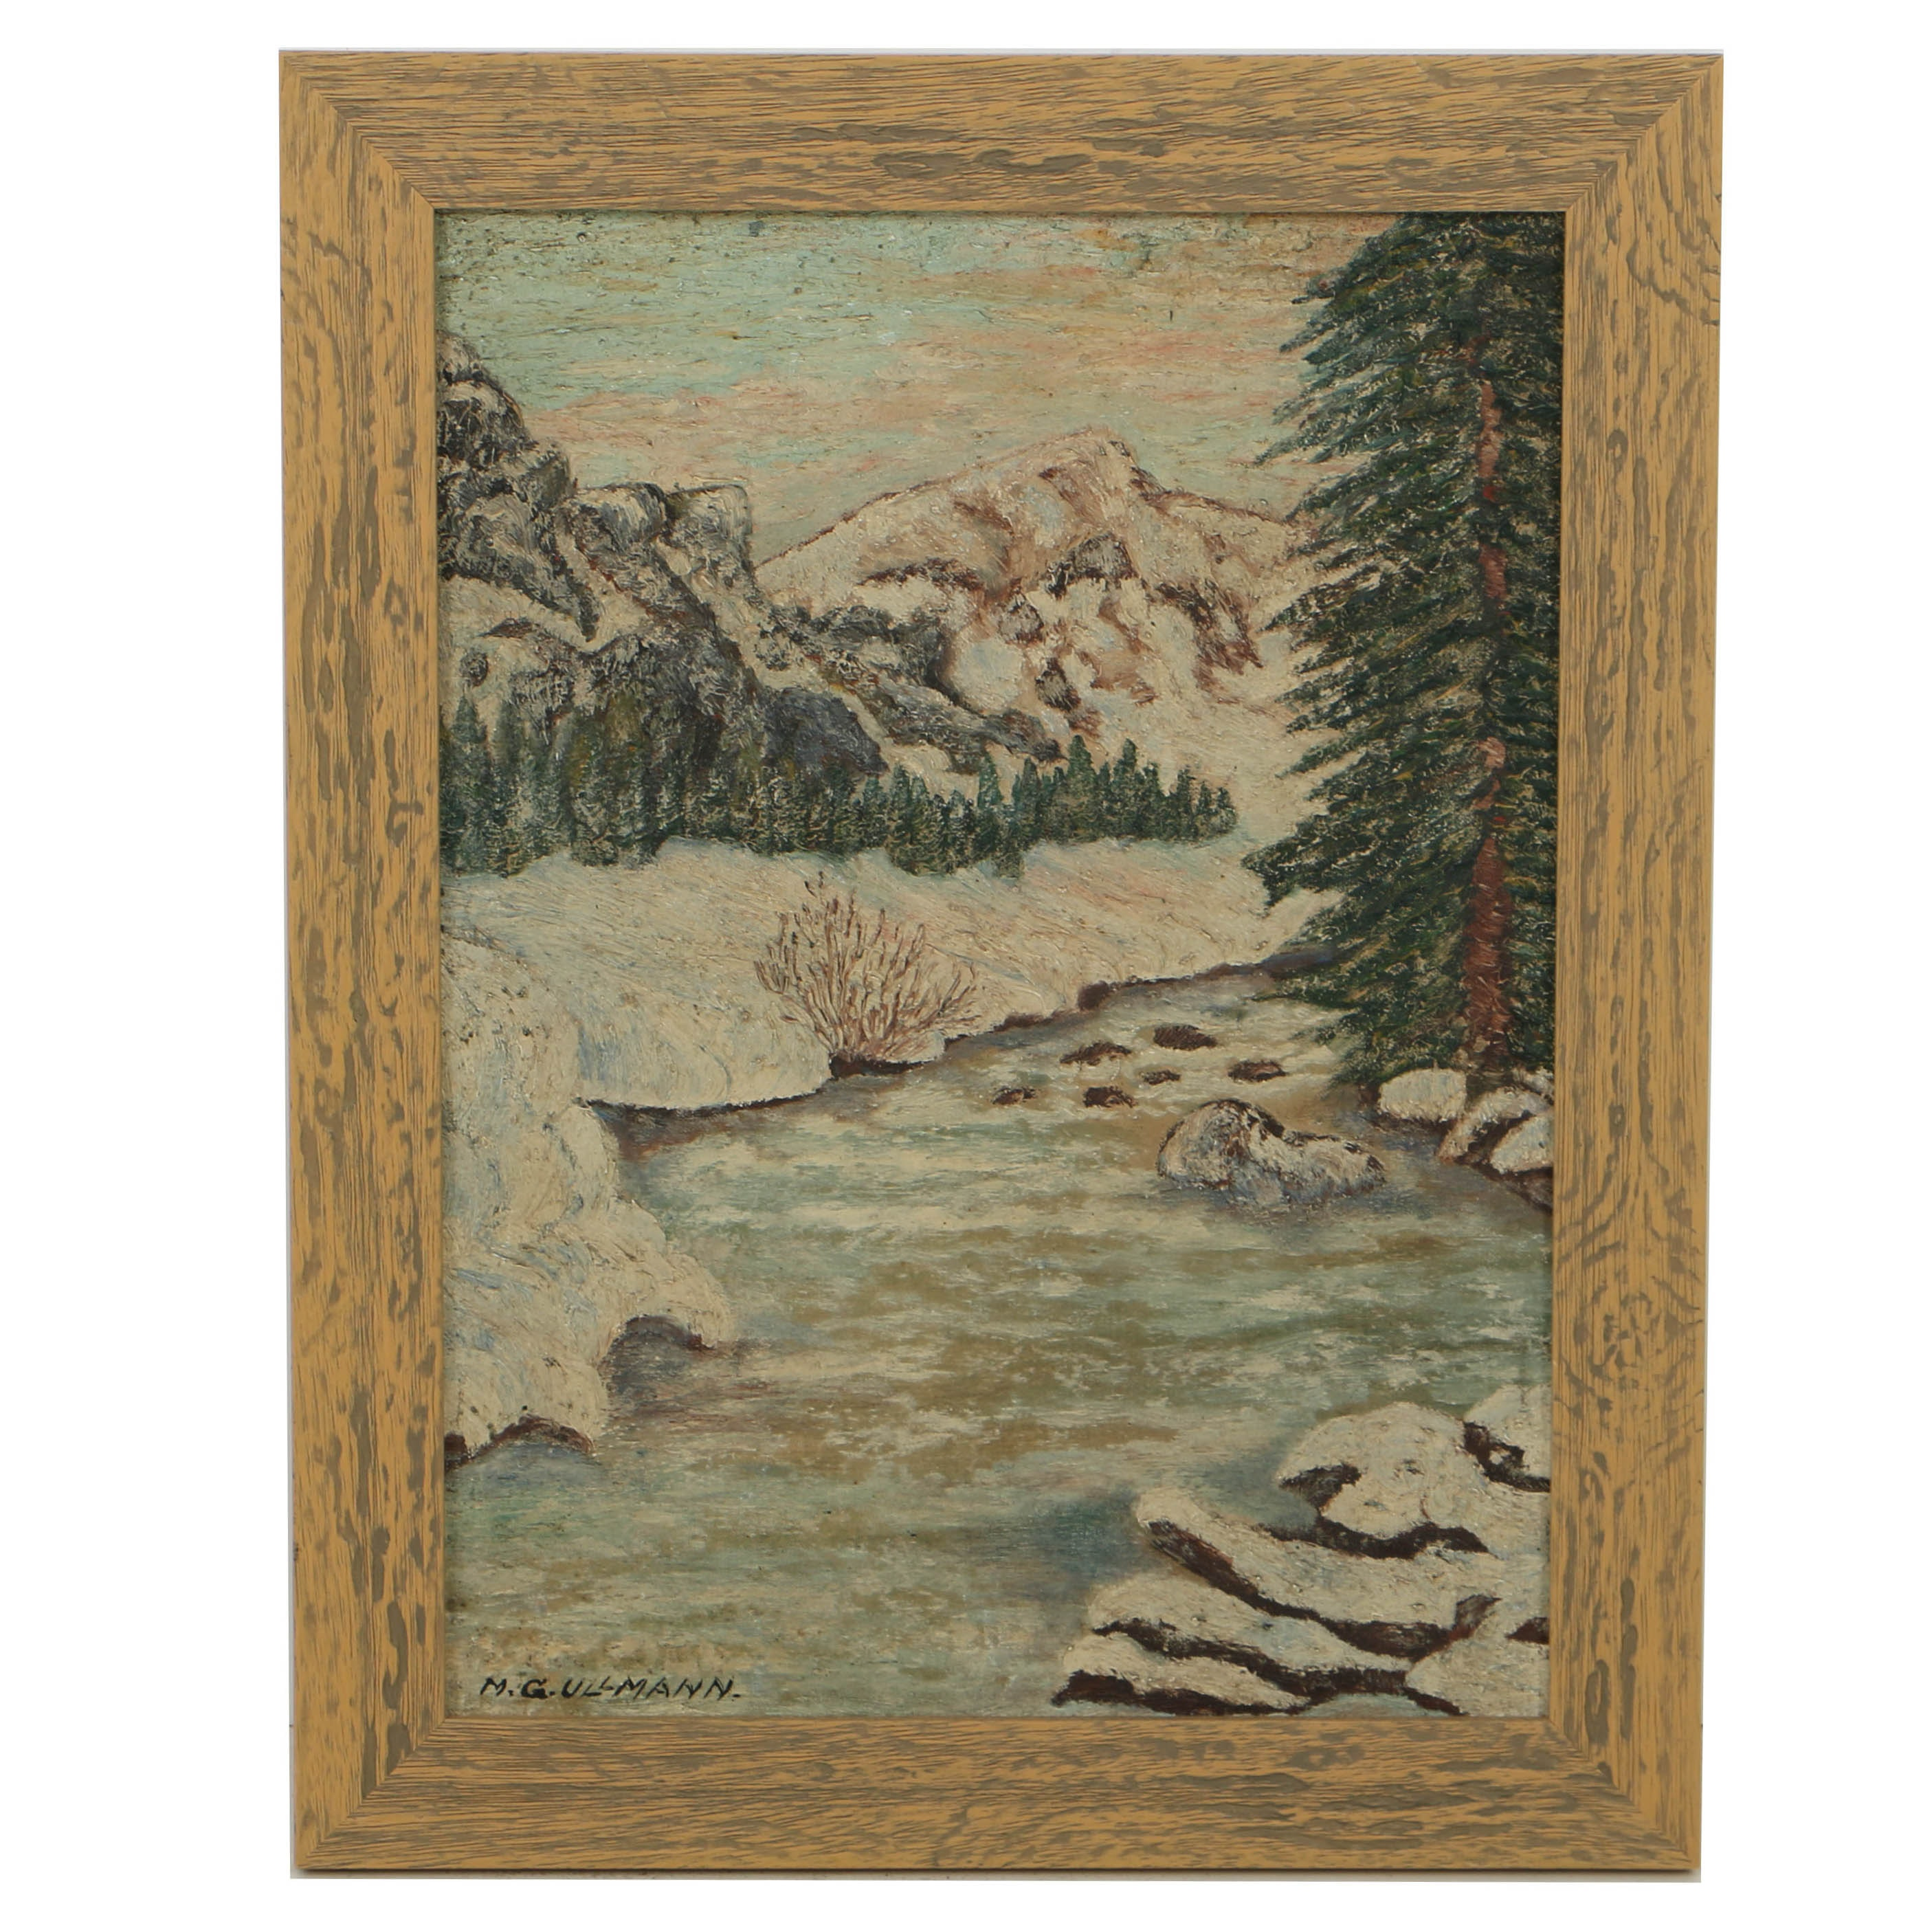 M.G. Ullmann Oil Painting on Wood of Mountainous Landscape